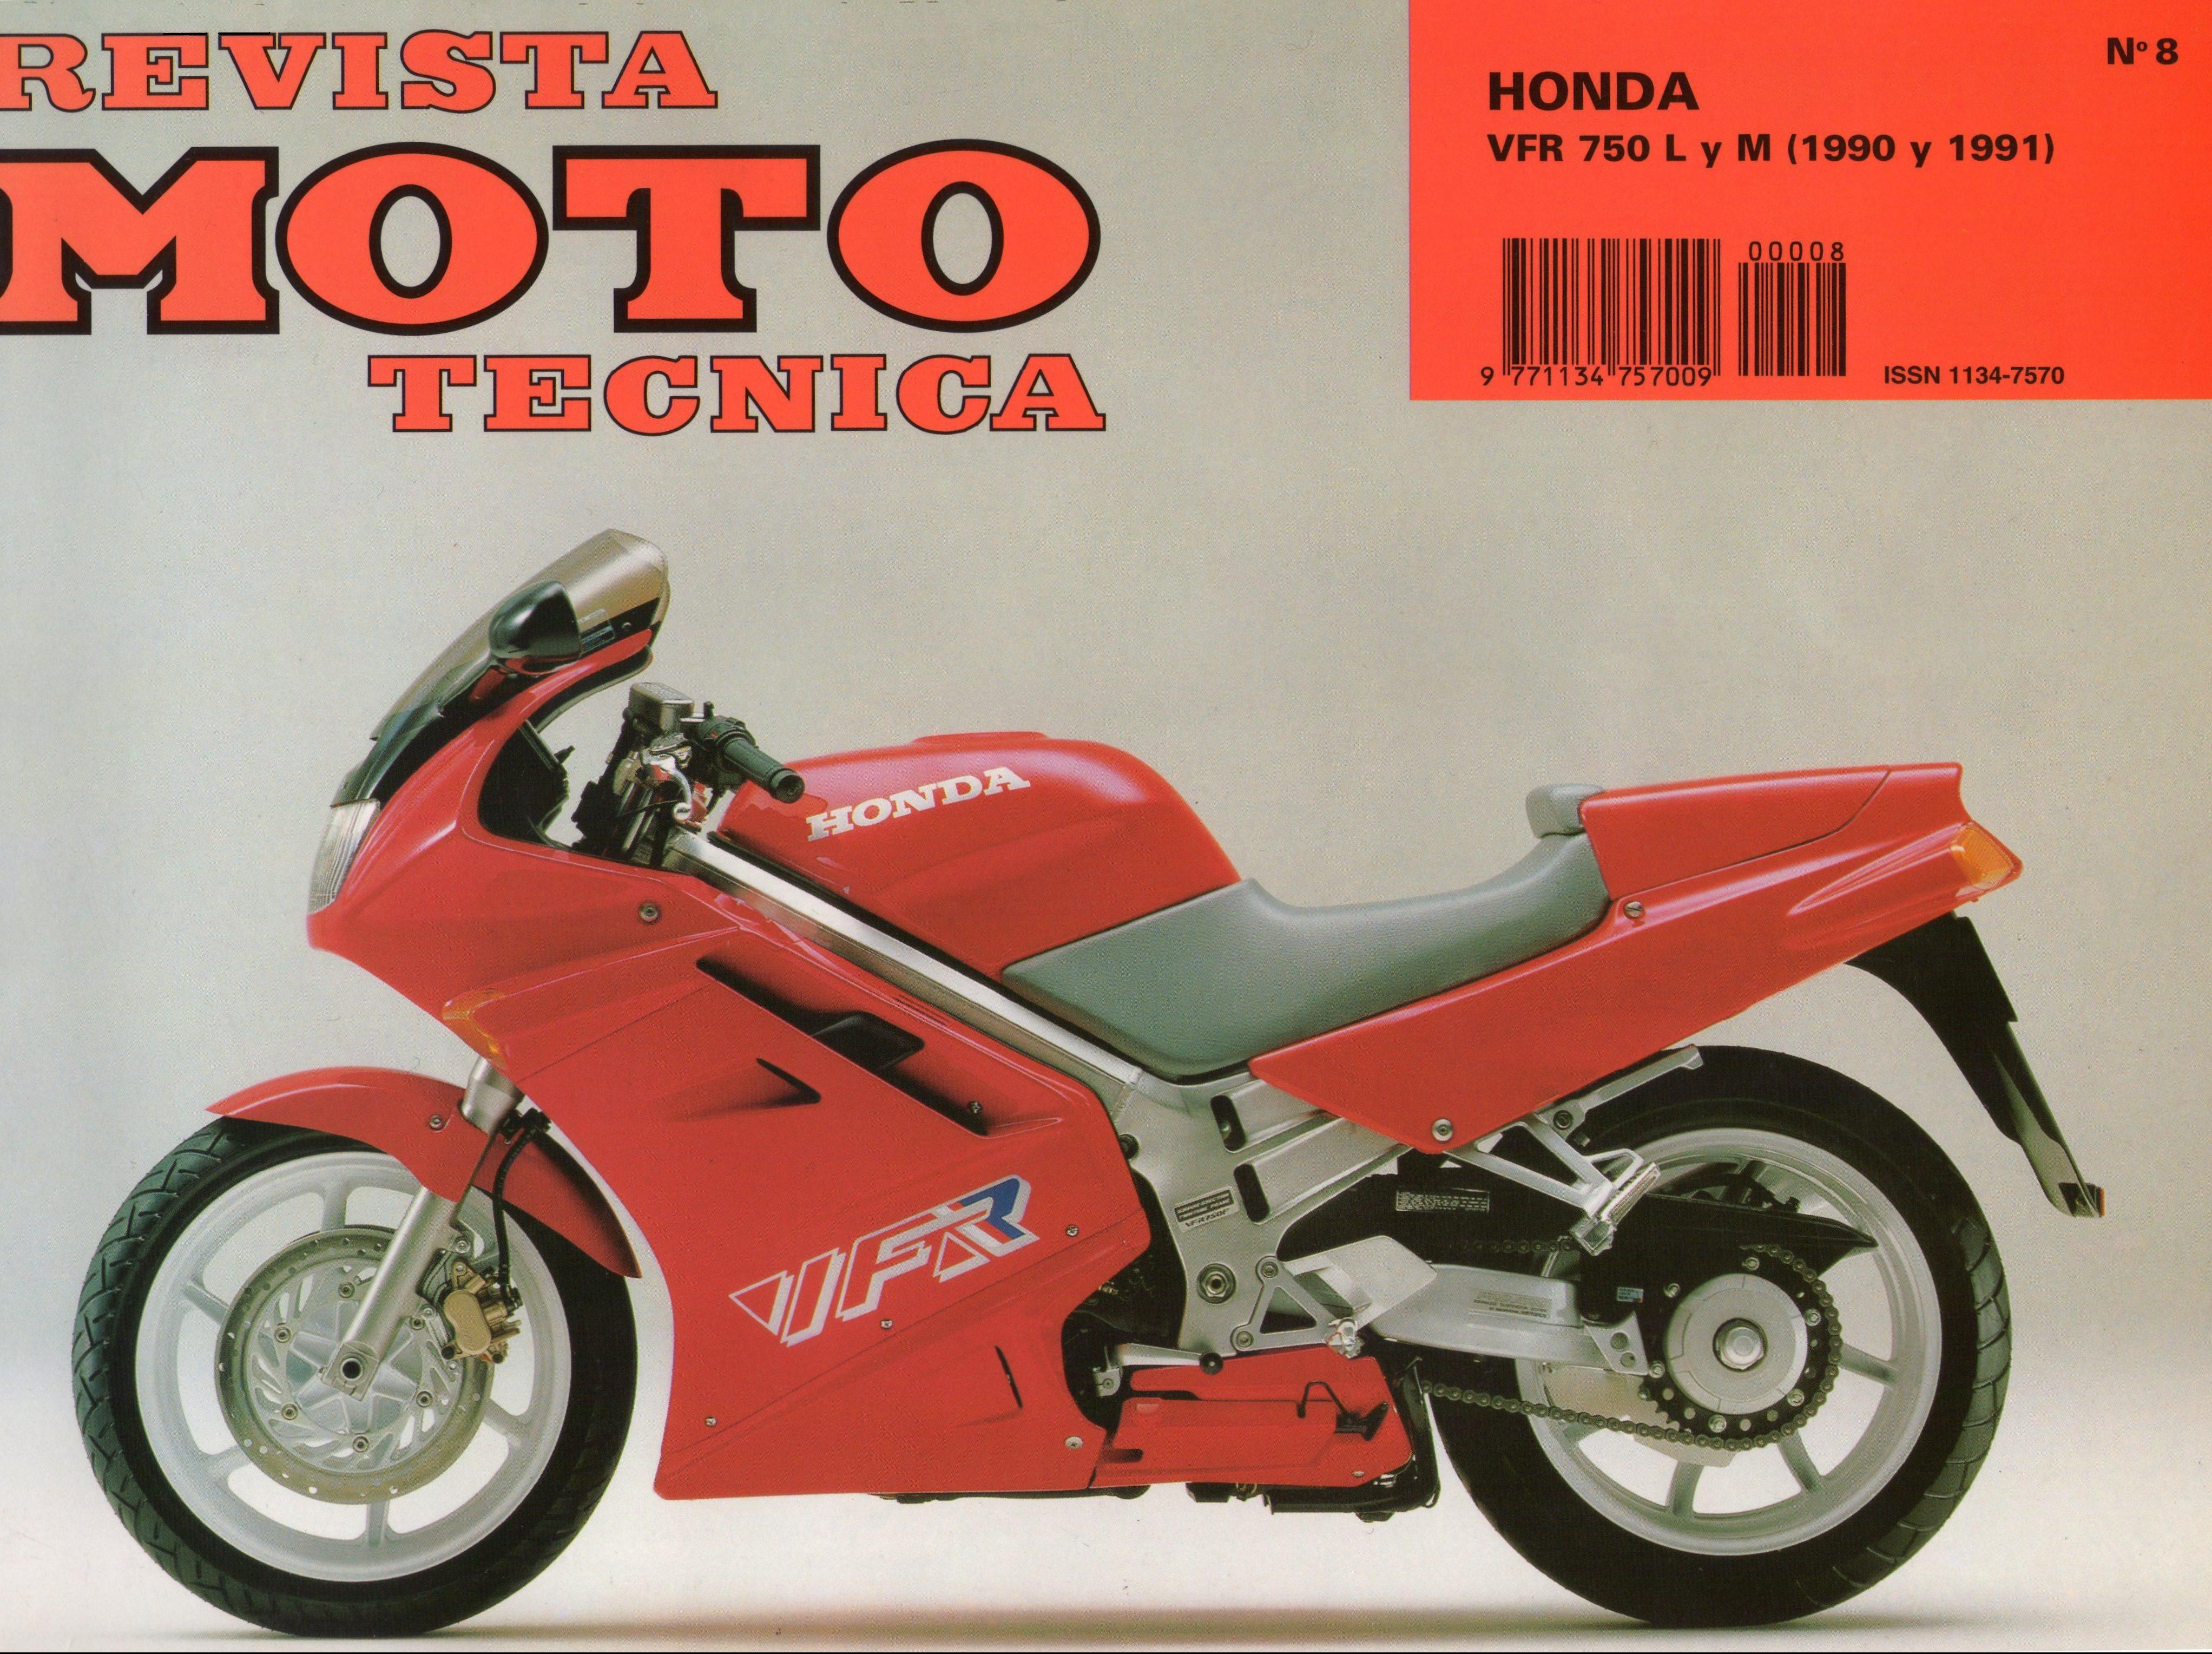 Revista Moto Technica for Honda VFR750M (1991) (Spanish)